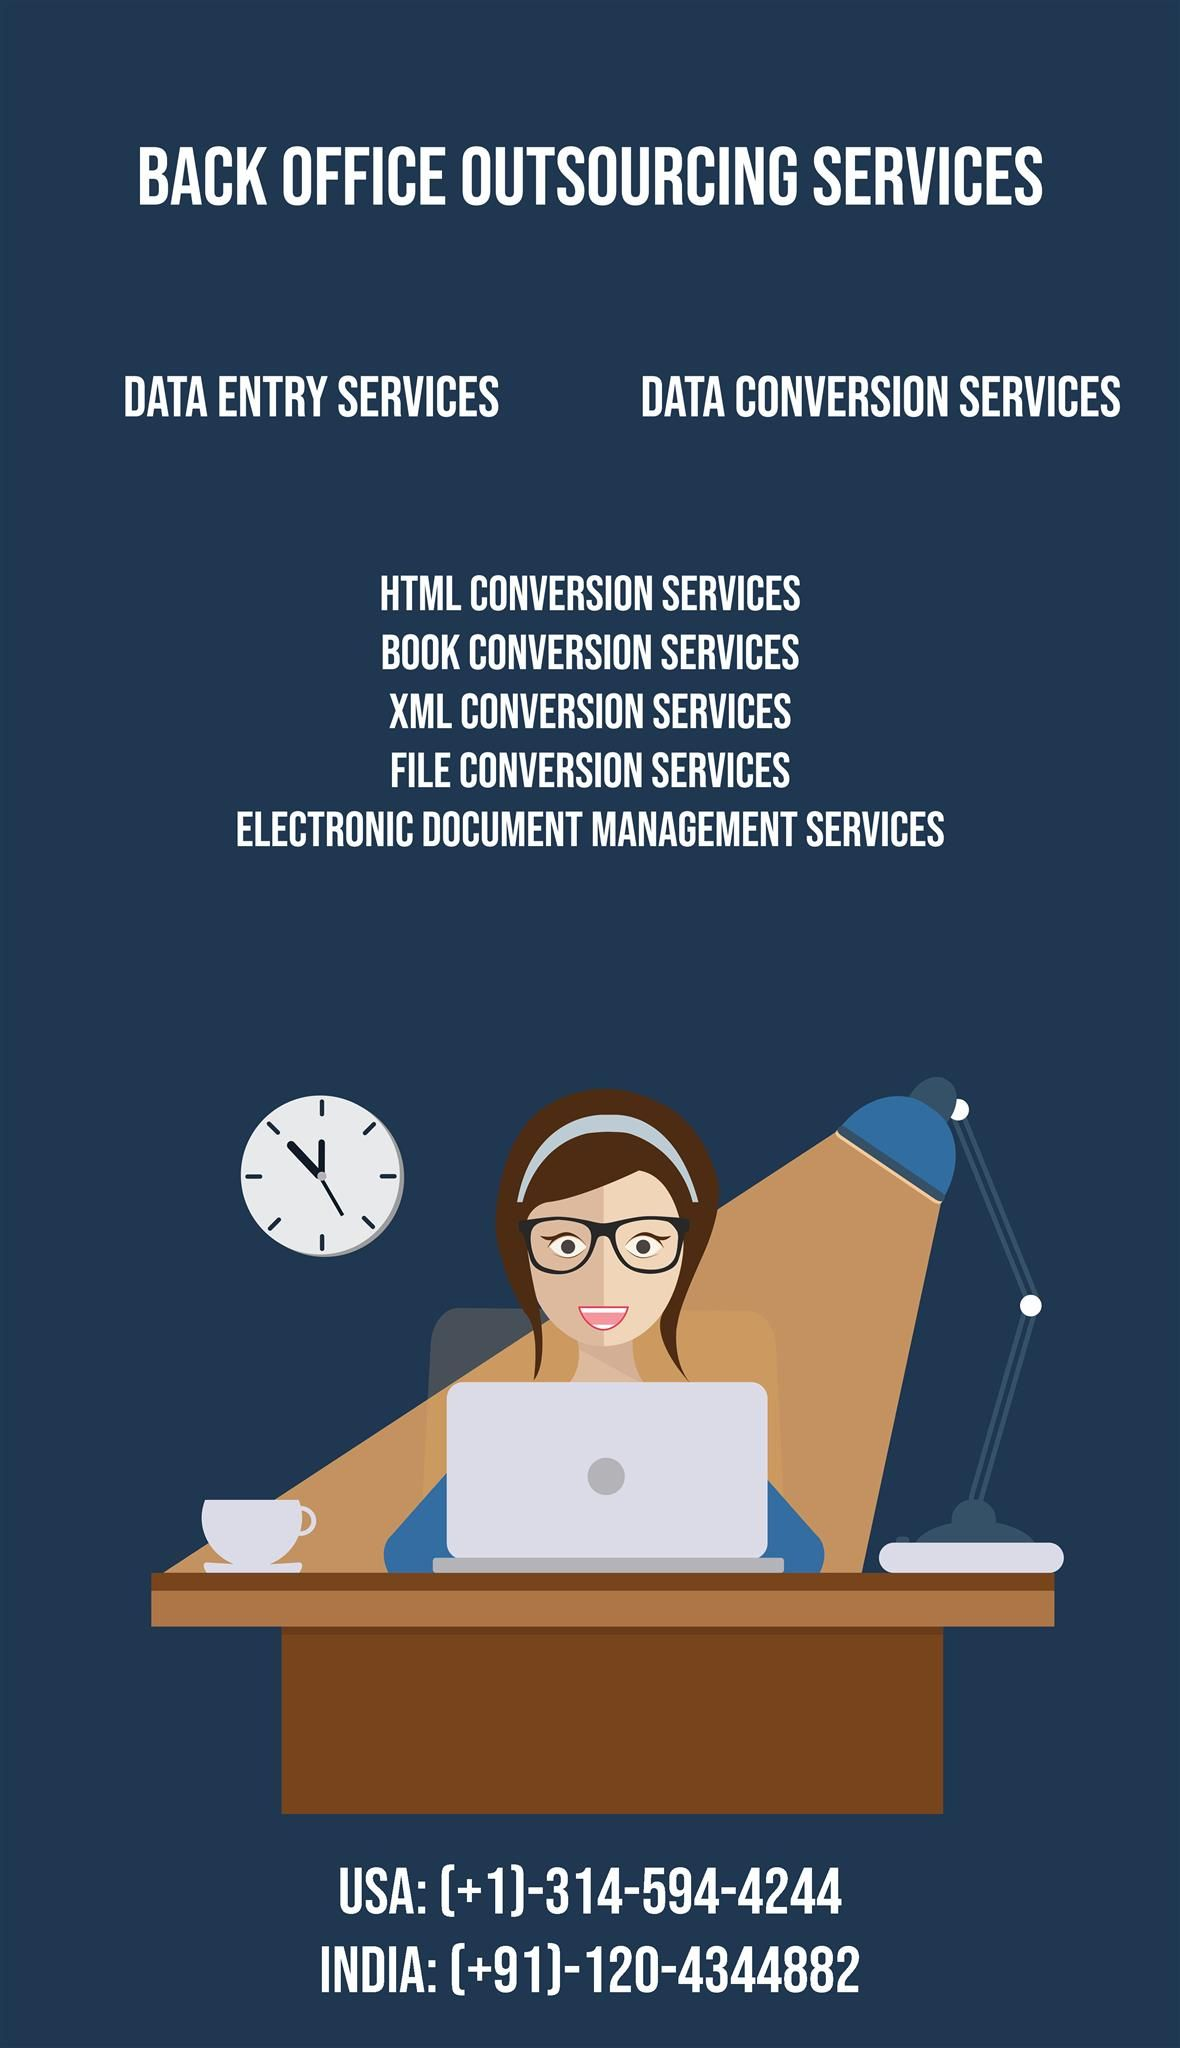 Back office outsourcing call center service